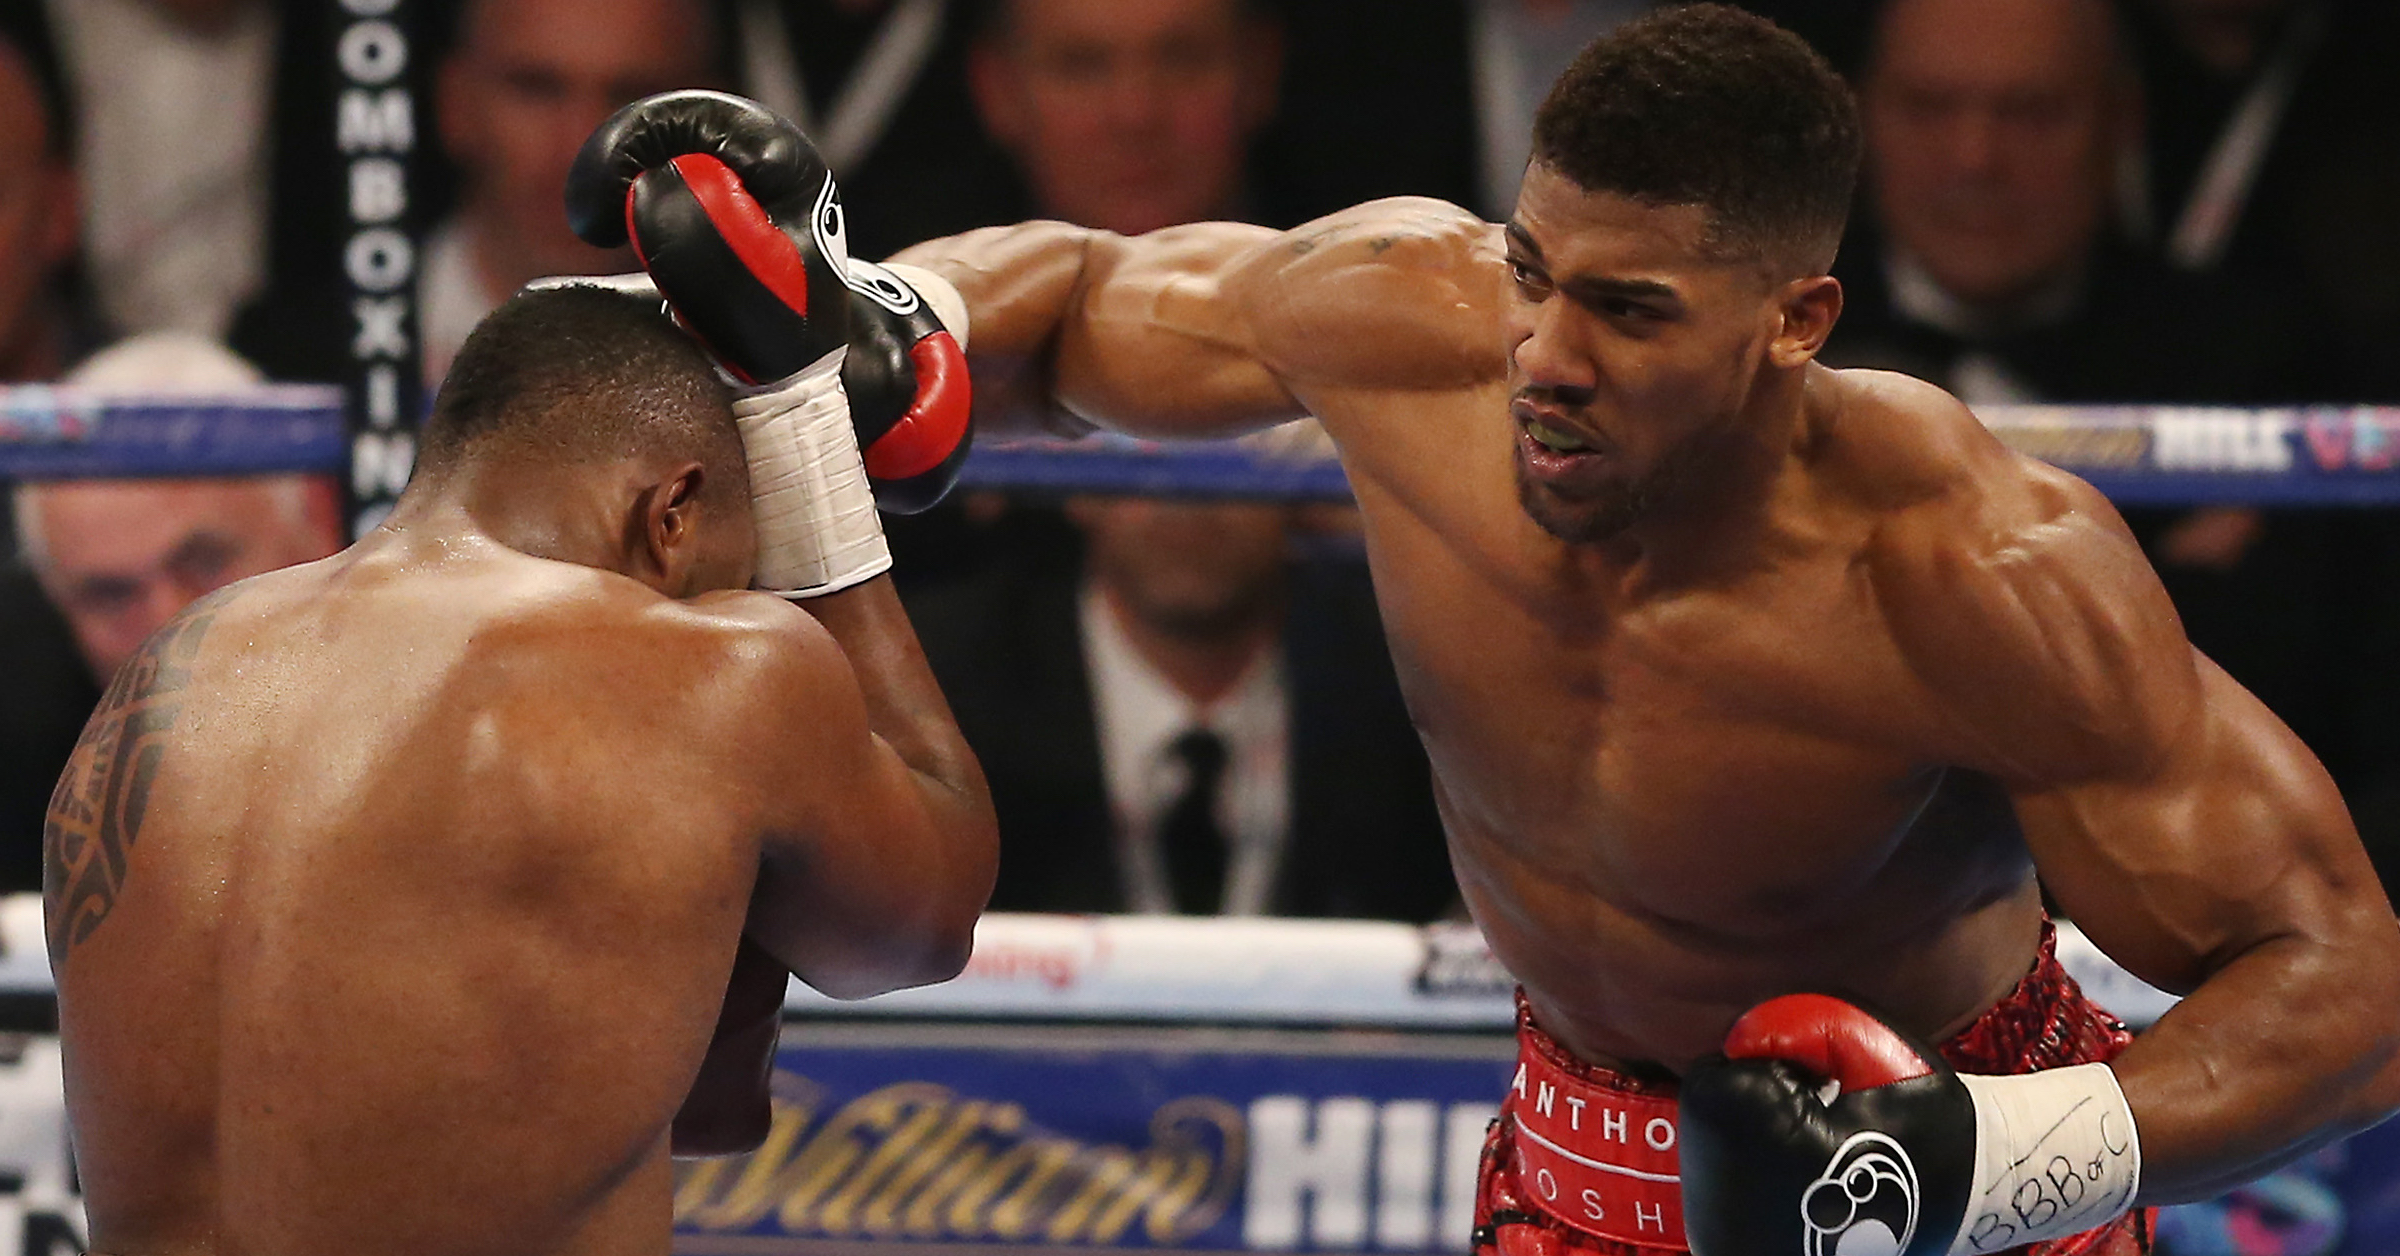 WATCH: All 18 Of Anthony Joshua's Brutal Knockouts